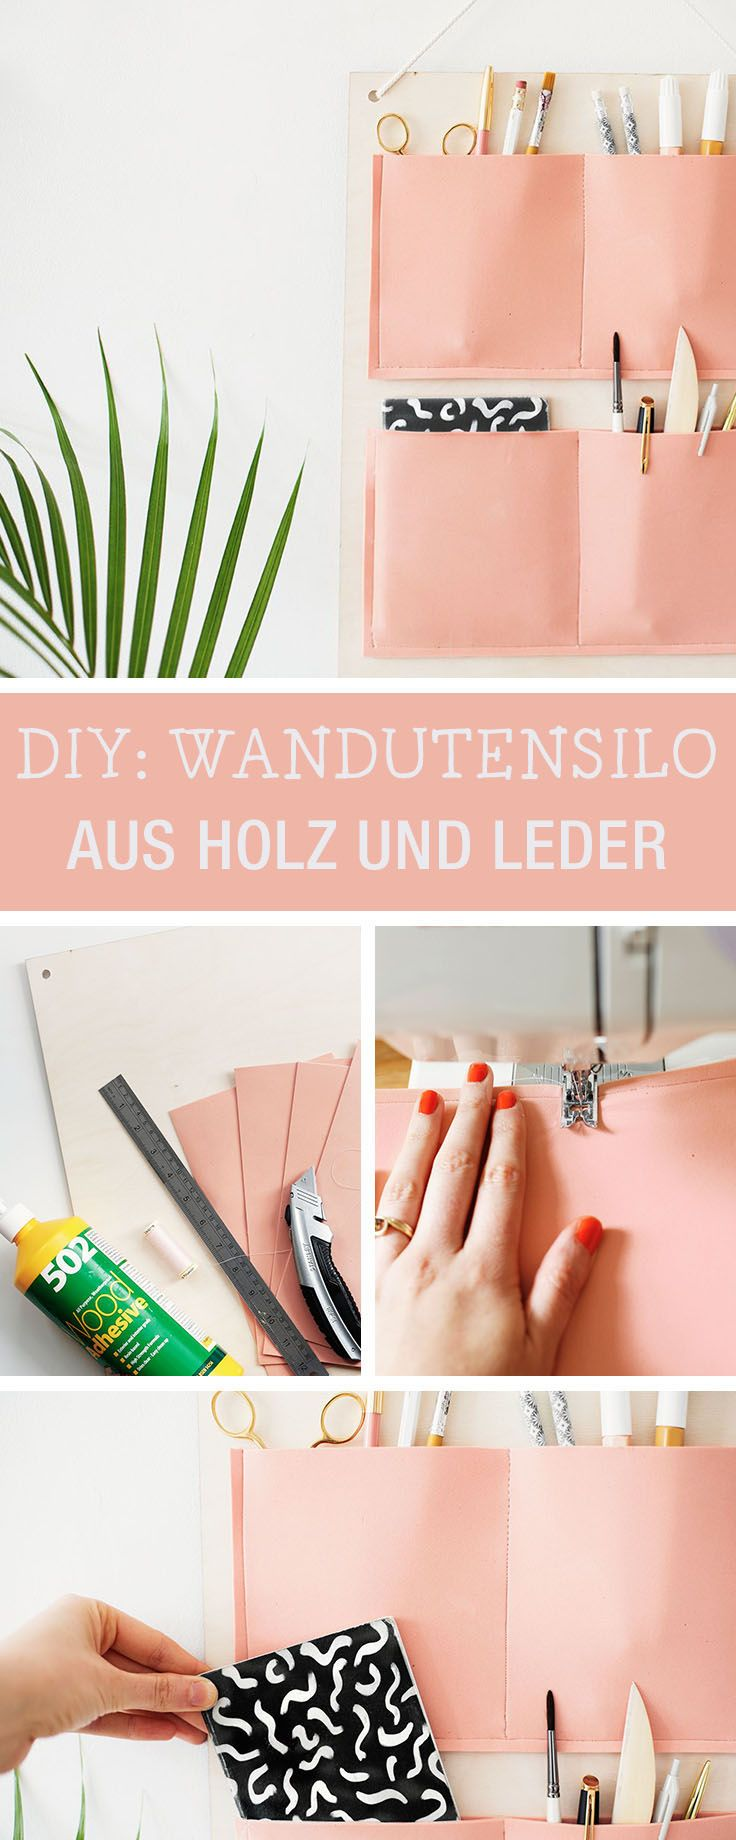 DIY-Inspiration für ein angesagtes Wandutensilo / diy wall utensilo, storage idea for your home via DaWanda.com